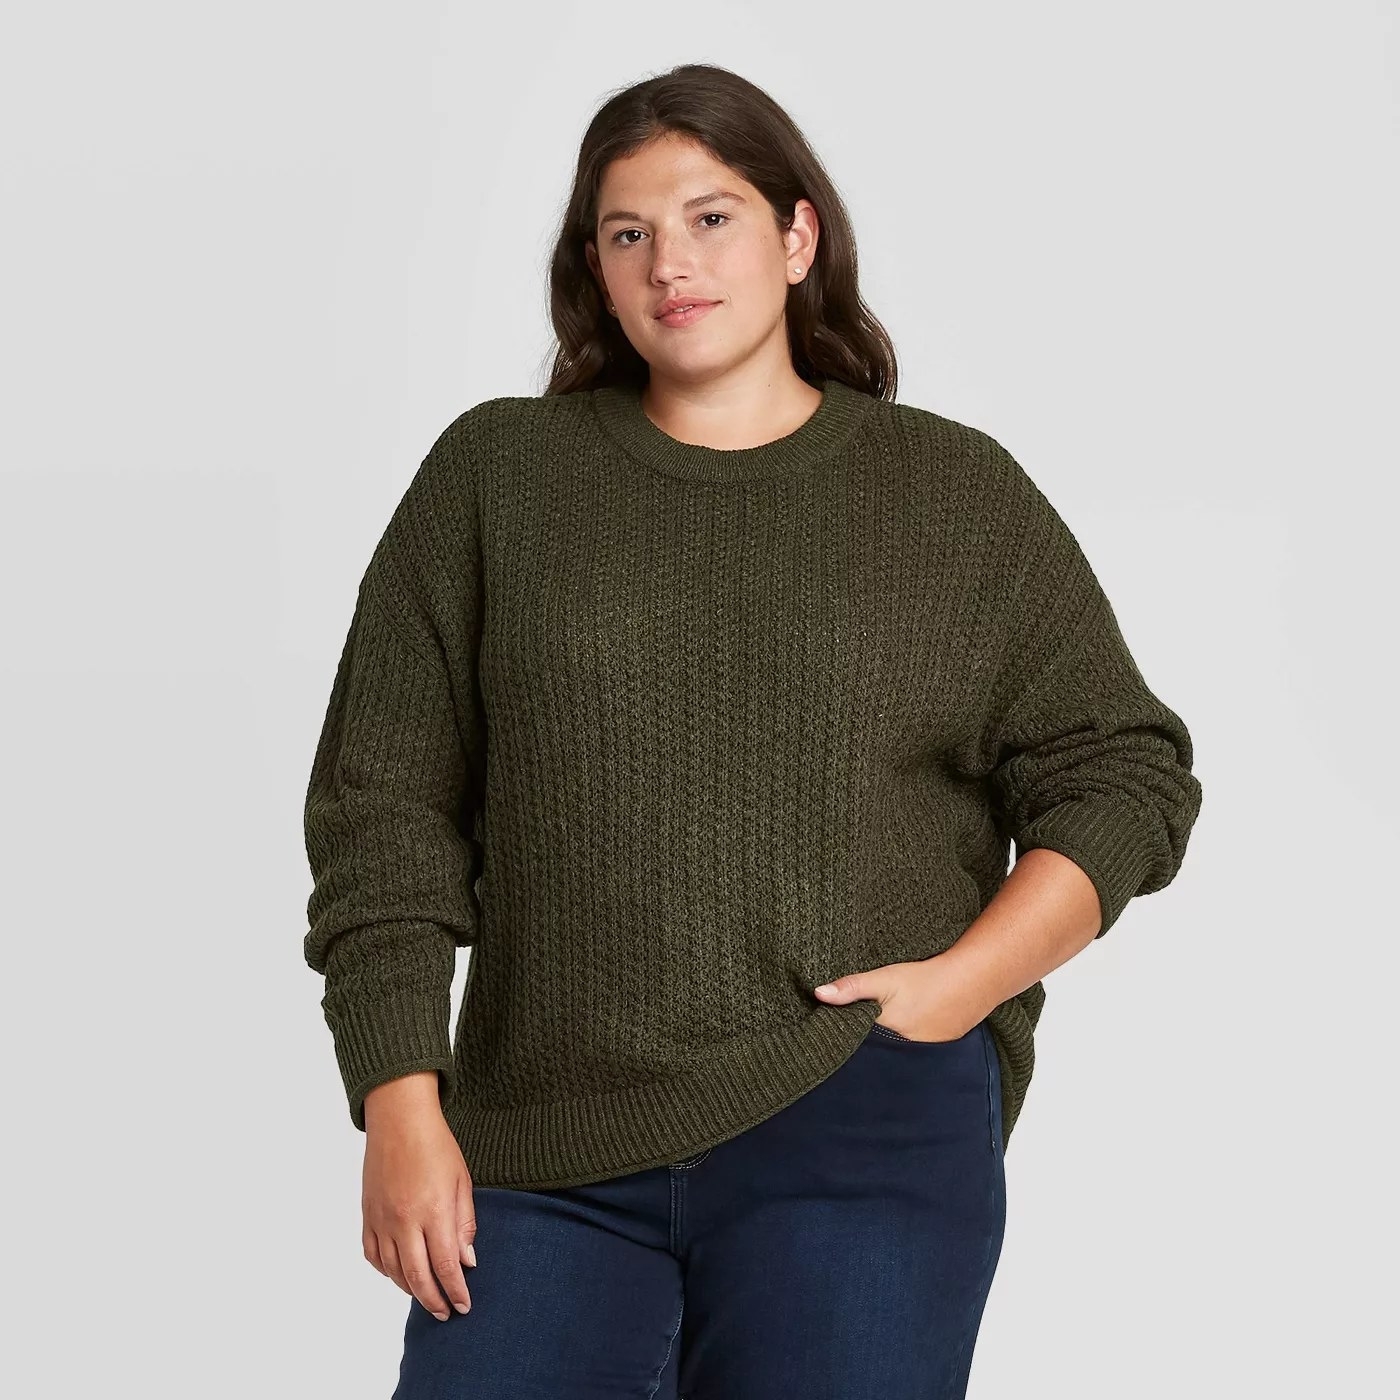 A model wearing the sweater in olive heather